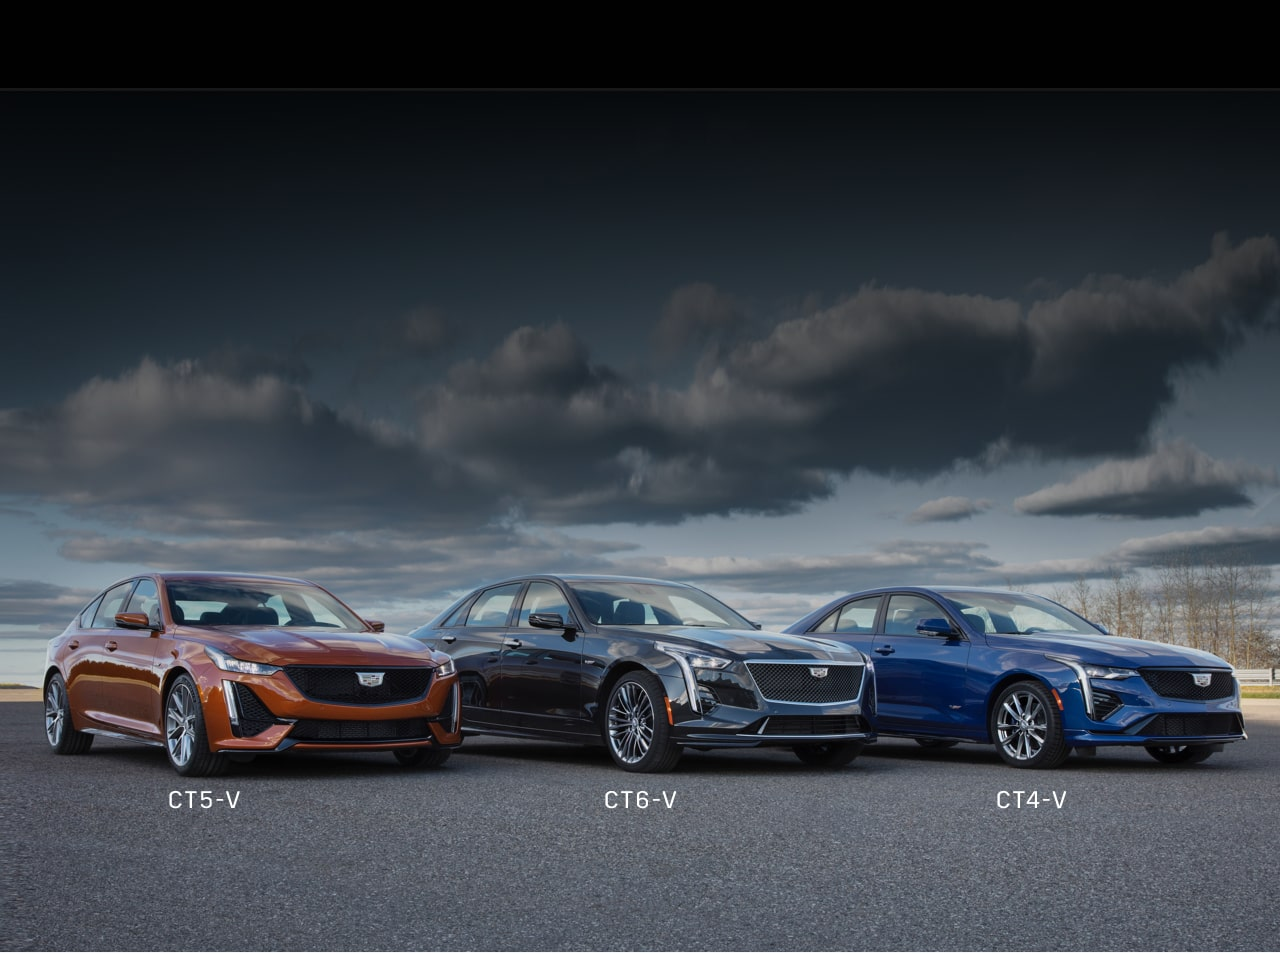 hight resolution of cadillac v series lineup ct4 v ct5 v ct6 v